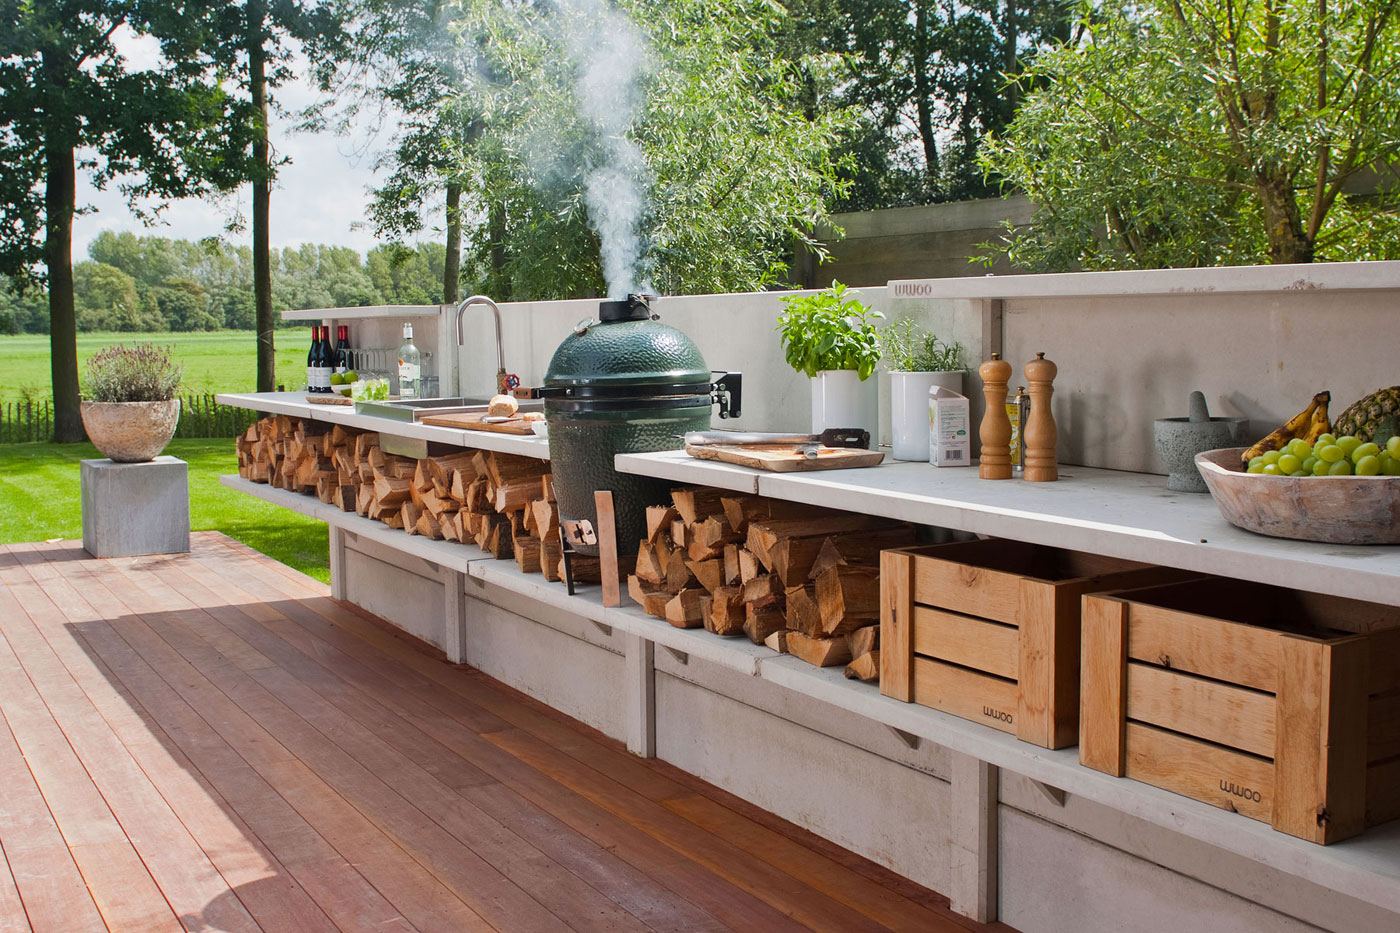 15 best outdoor kitchen ideas and designs - pictures of beautiful outdoor  kitchens WFEOJWL